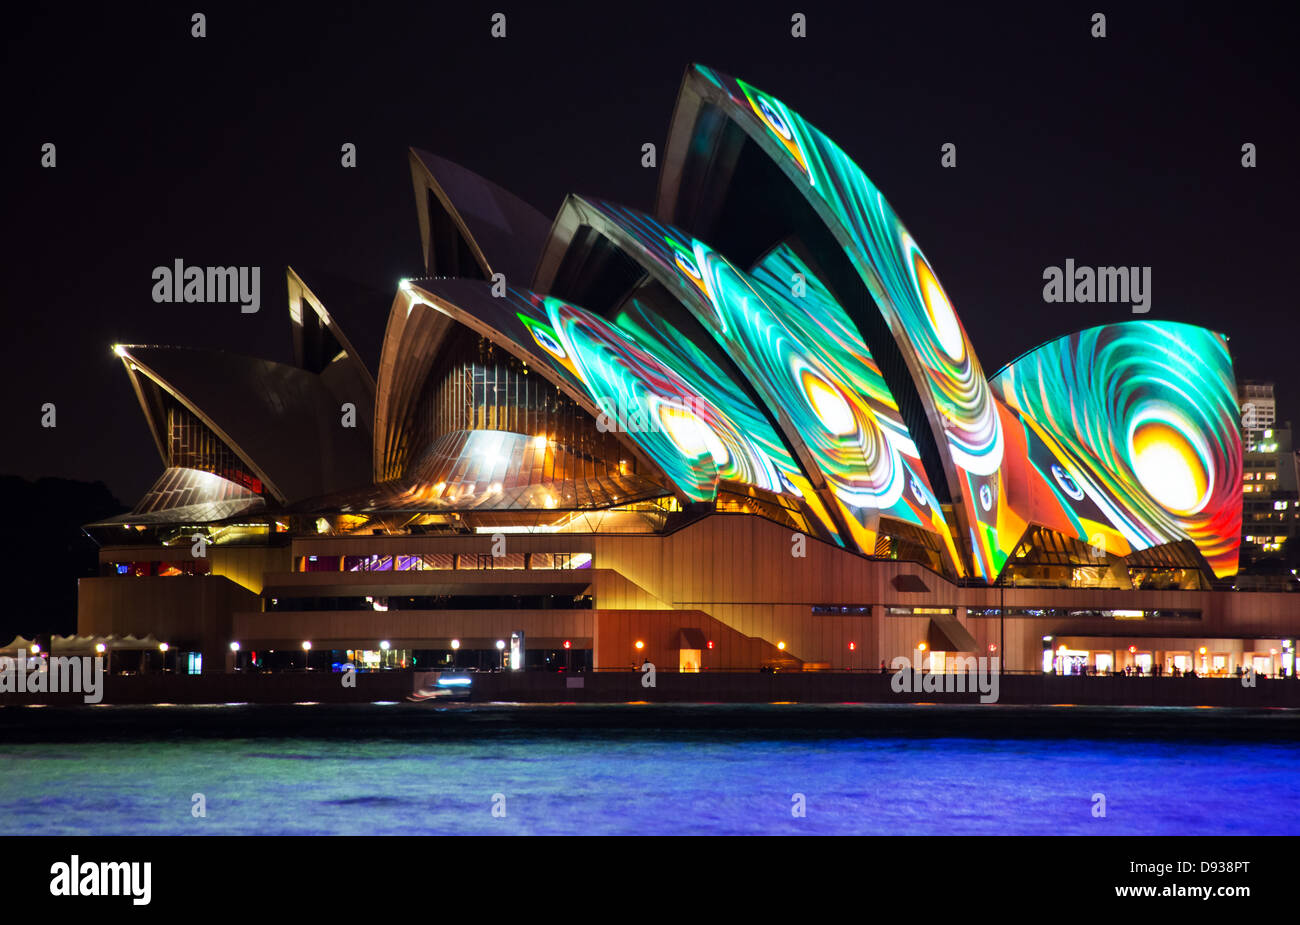 Special lighting effects on the Sydney Opera House during the annual Vivid Sydney Light Festival Australia & Special lighting effects on the Sydney Opera House during the annual ...